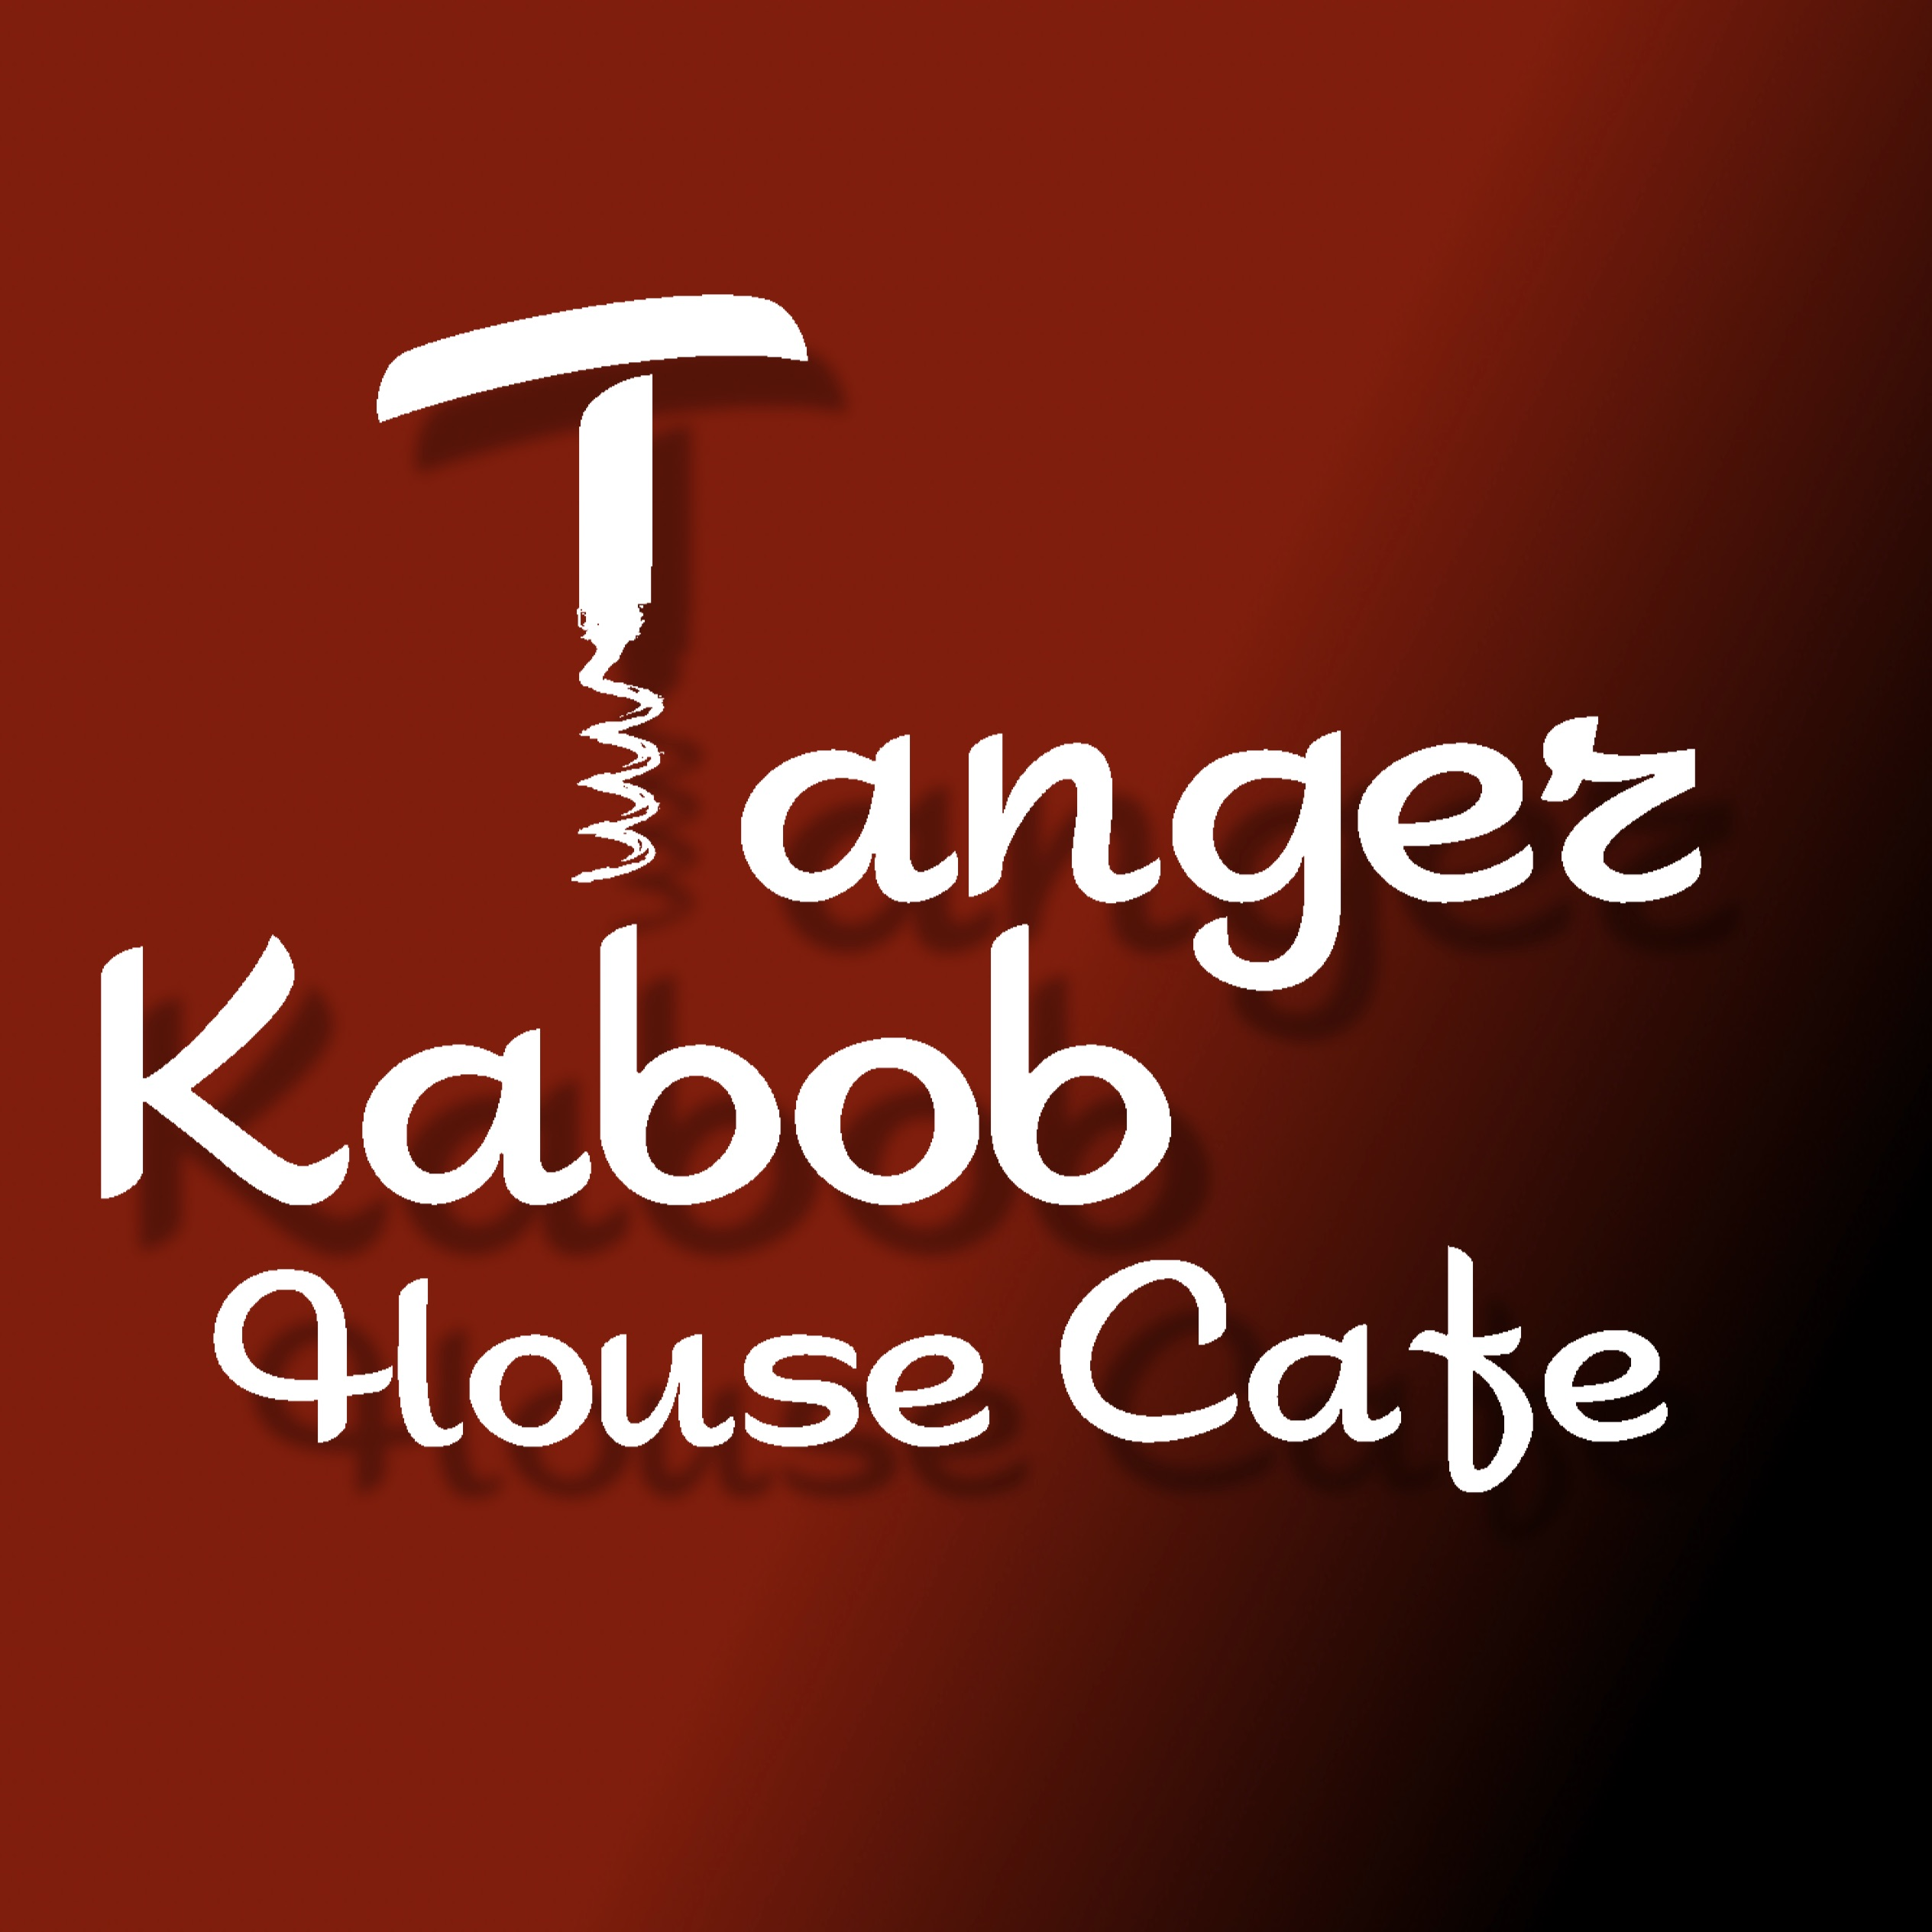 Tanger Kabob House Cafe